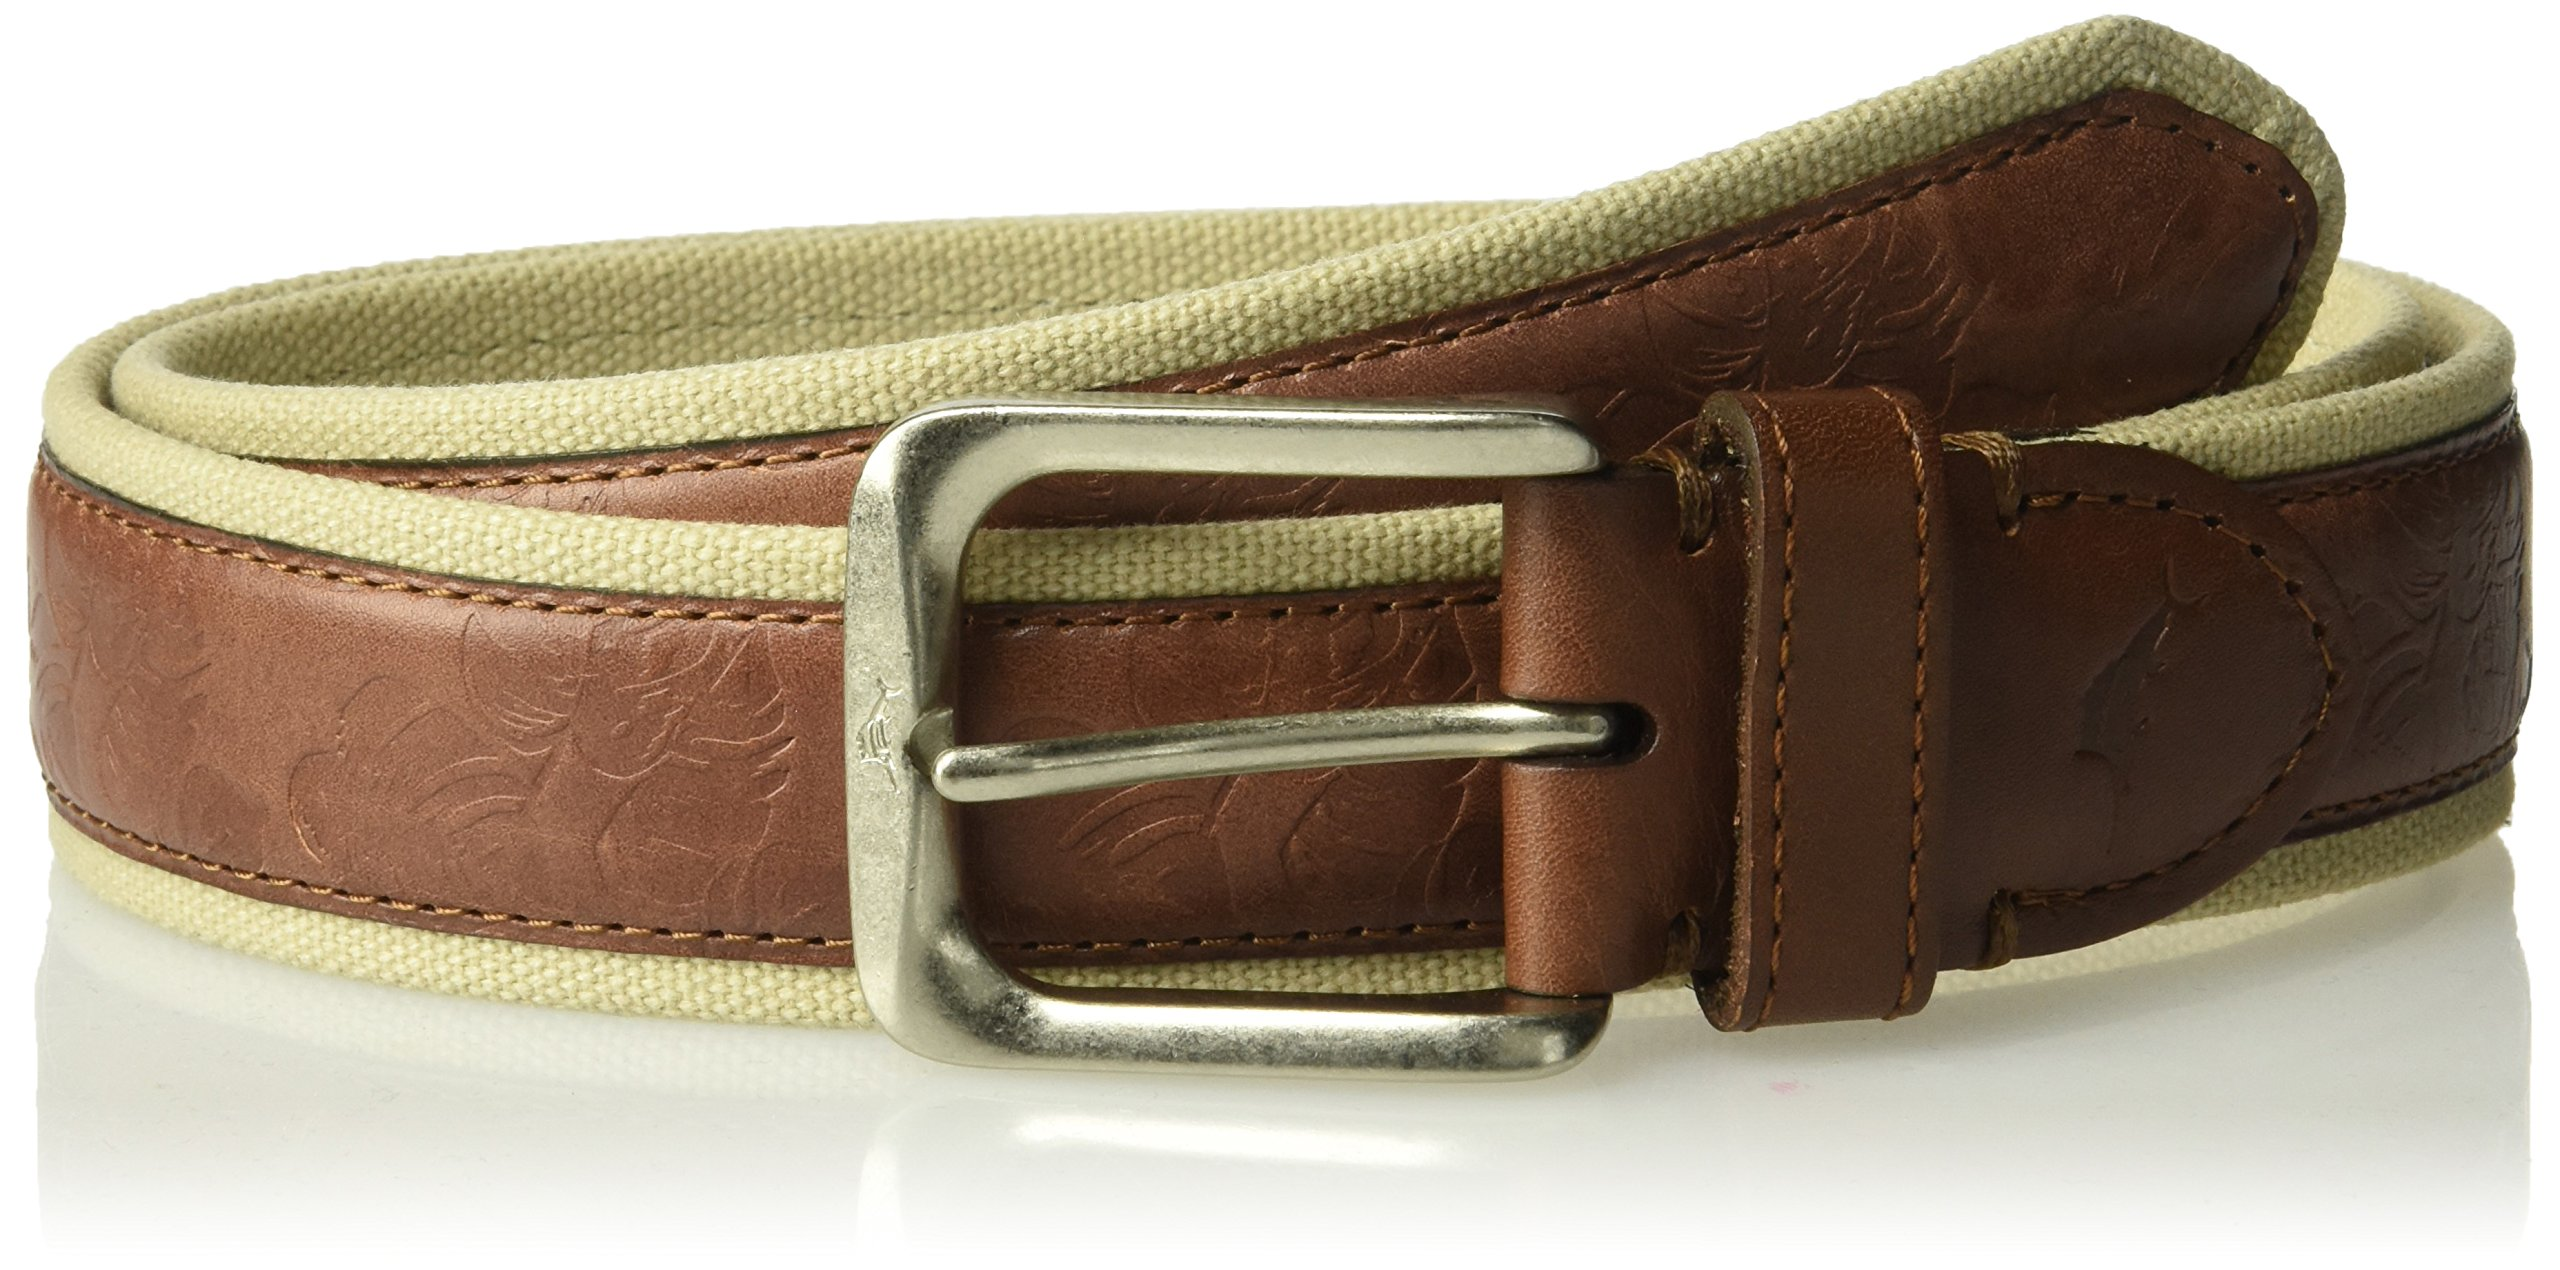 Tommy Bahama Men's Fabric Belt, brown, 44